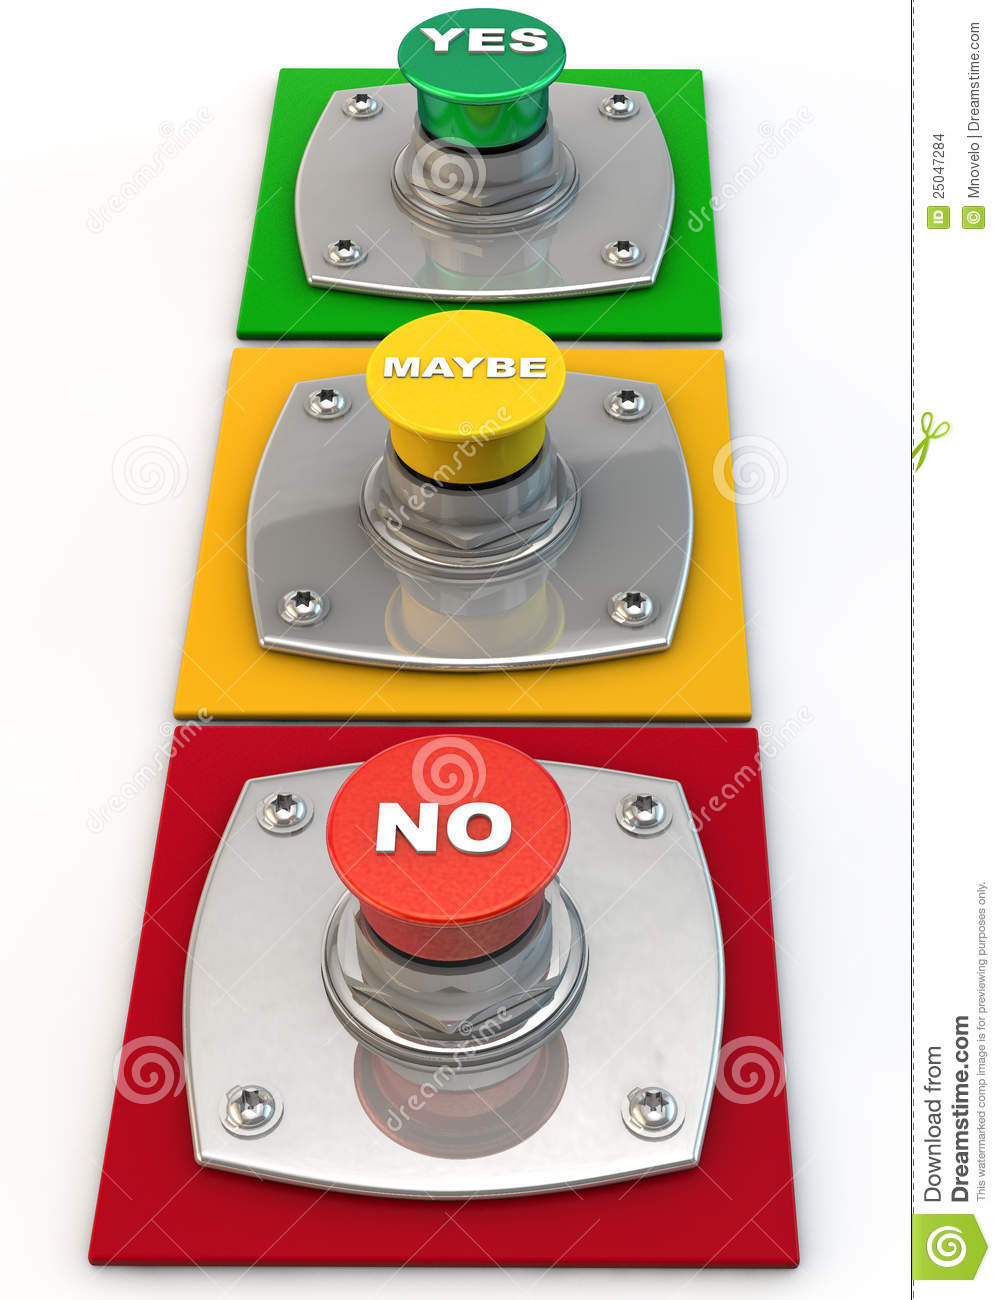 Yes No Maybe Button Stock Images - Image: 25047284